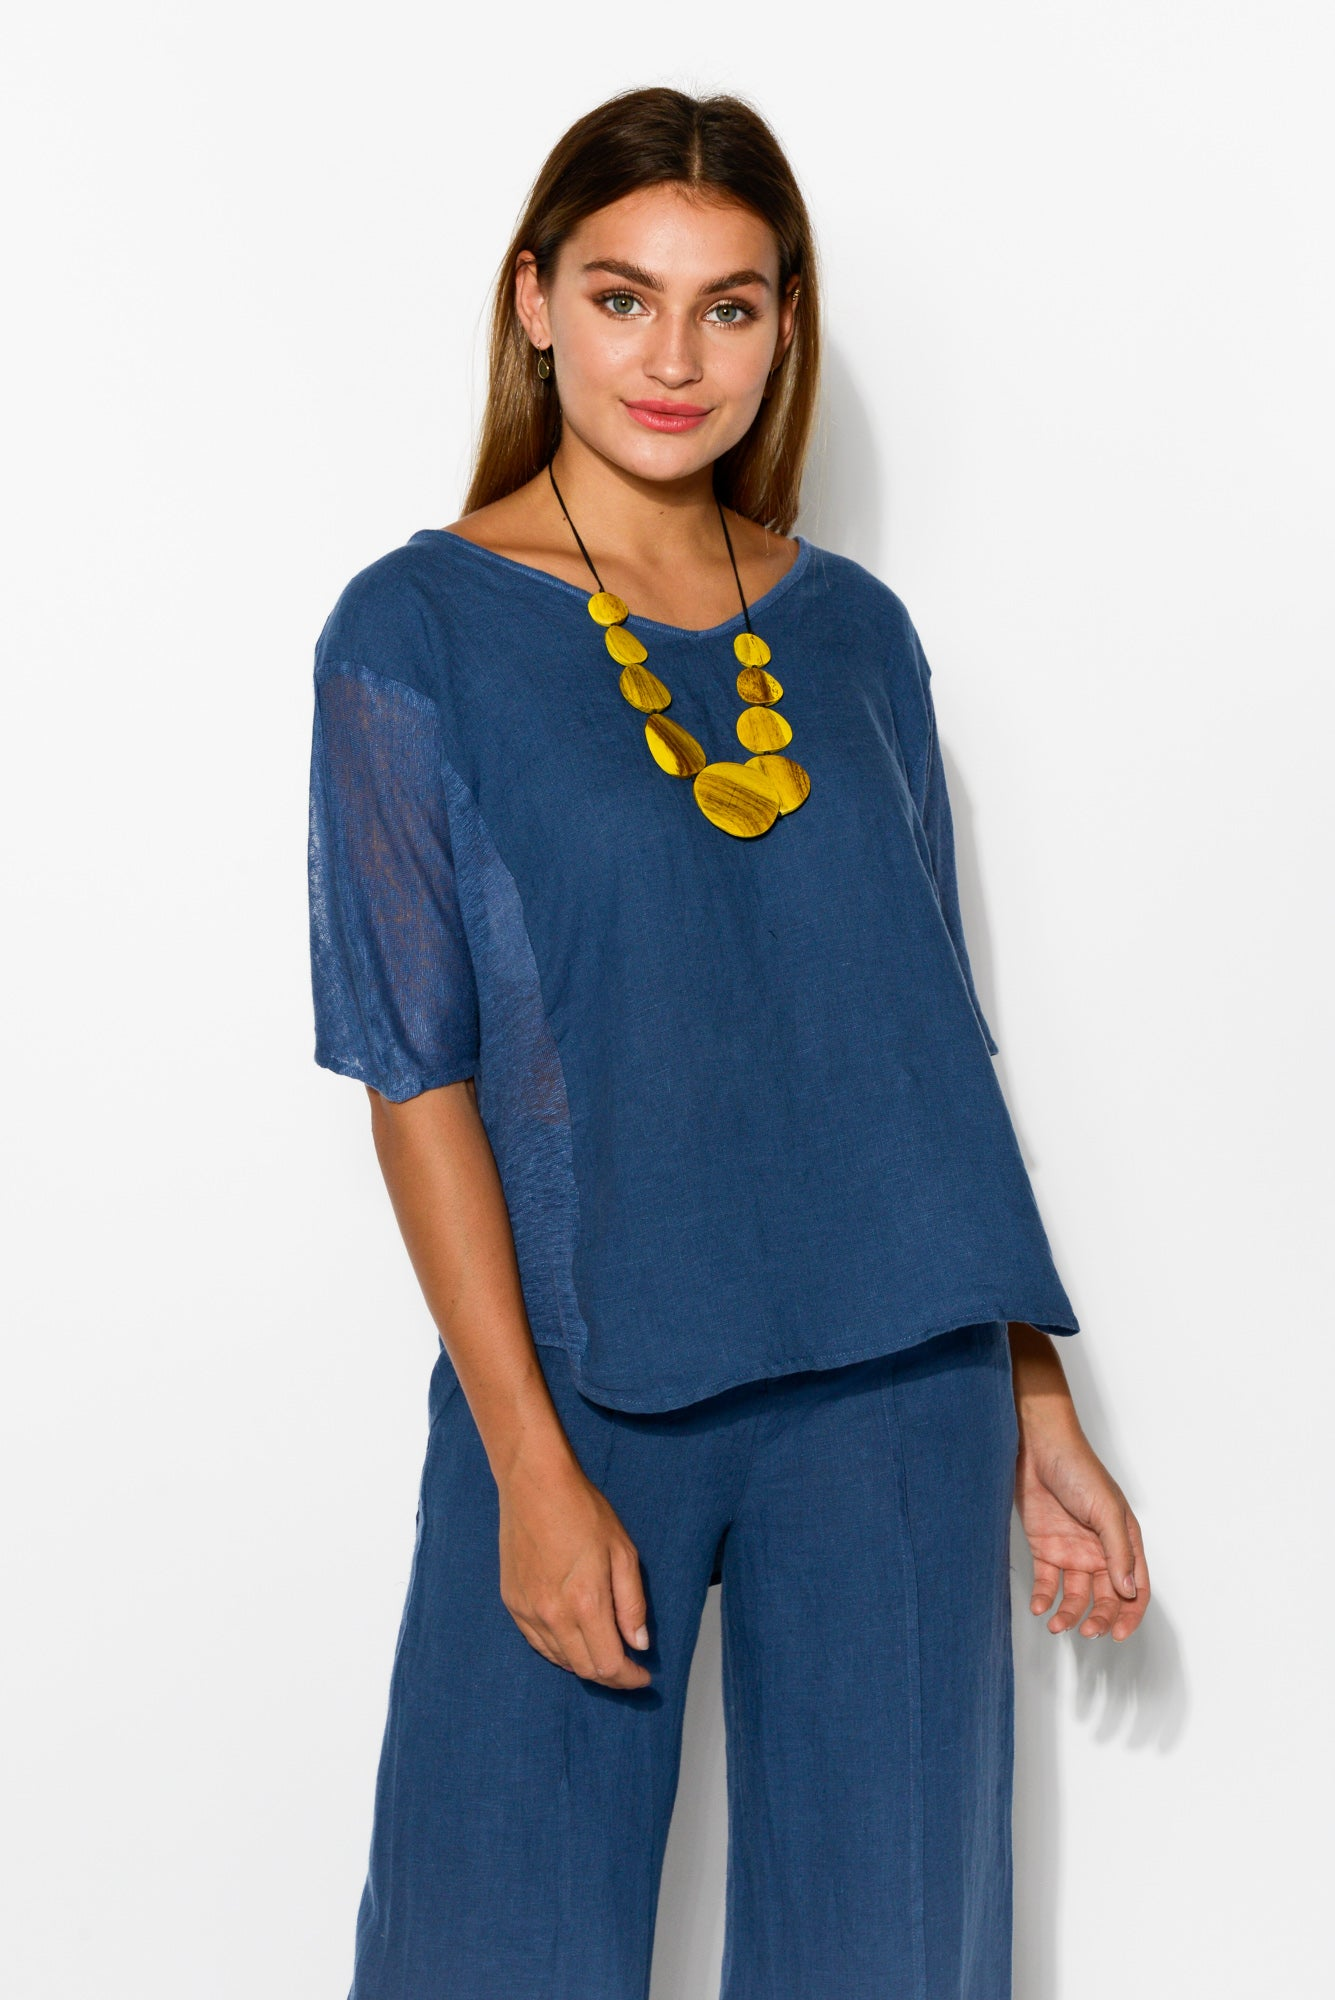 Livorno Blue Linen Top